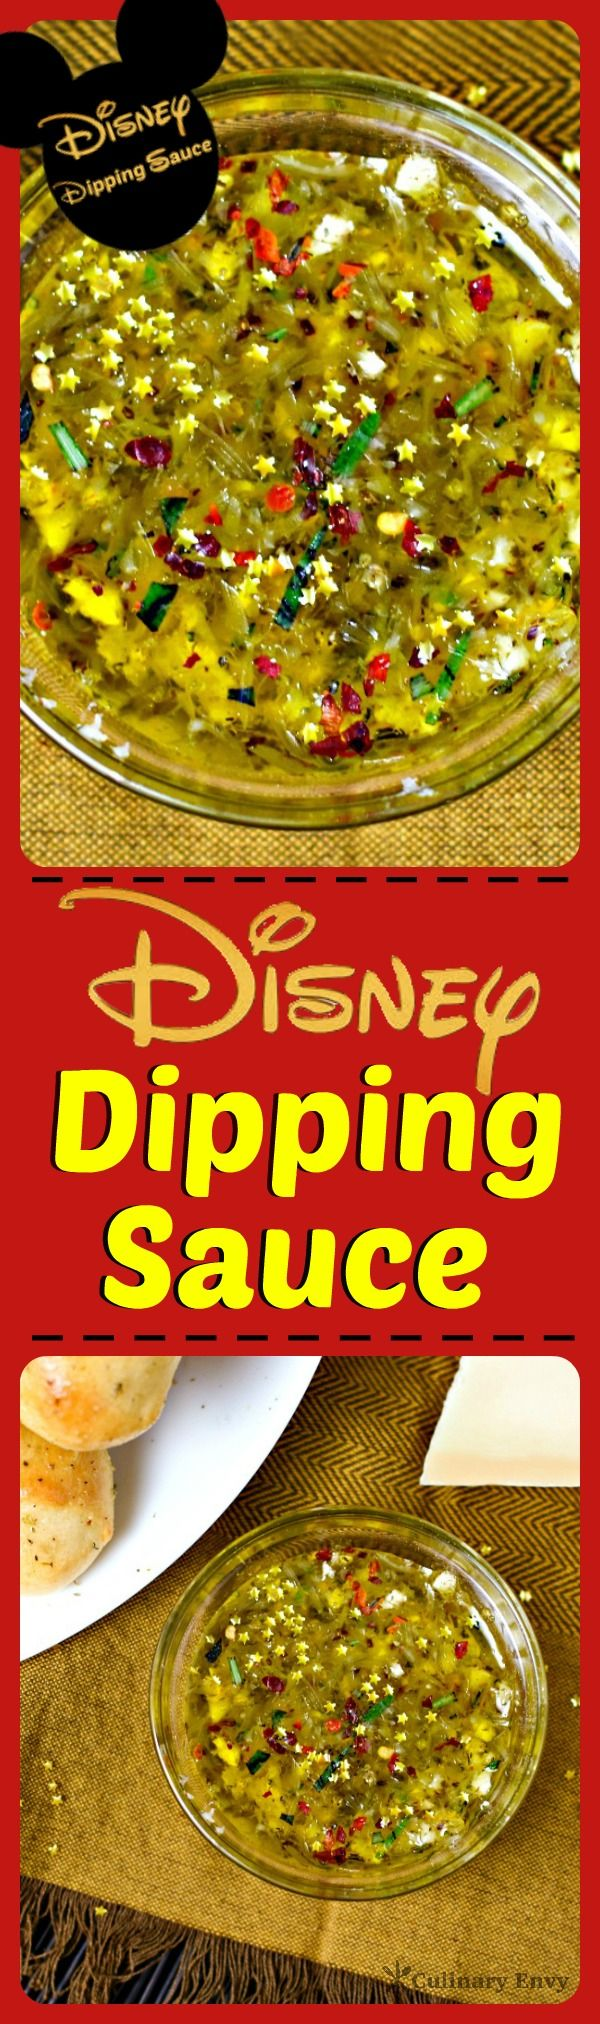 Disney Dipping Sauce is the perfect blend of garlic infused olive oil, herbs, spices and Parmesan cheese.  With just a dash of golden stars. Click to read more or pin & save for later!